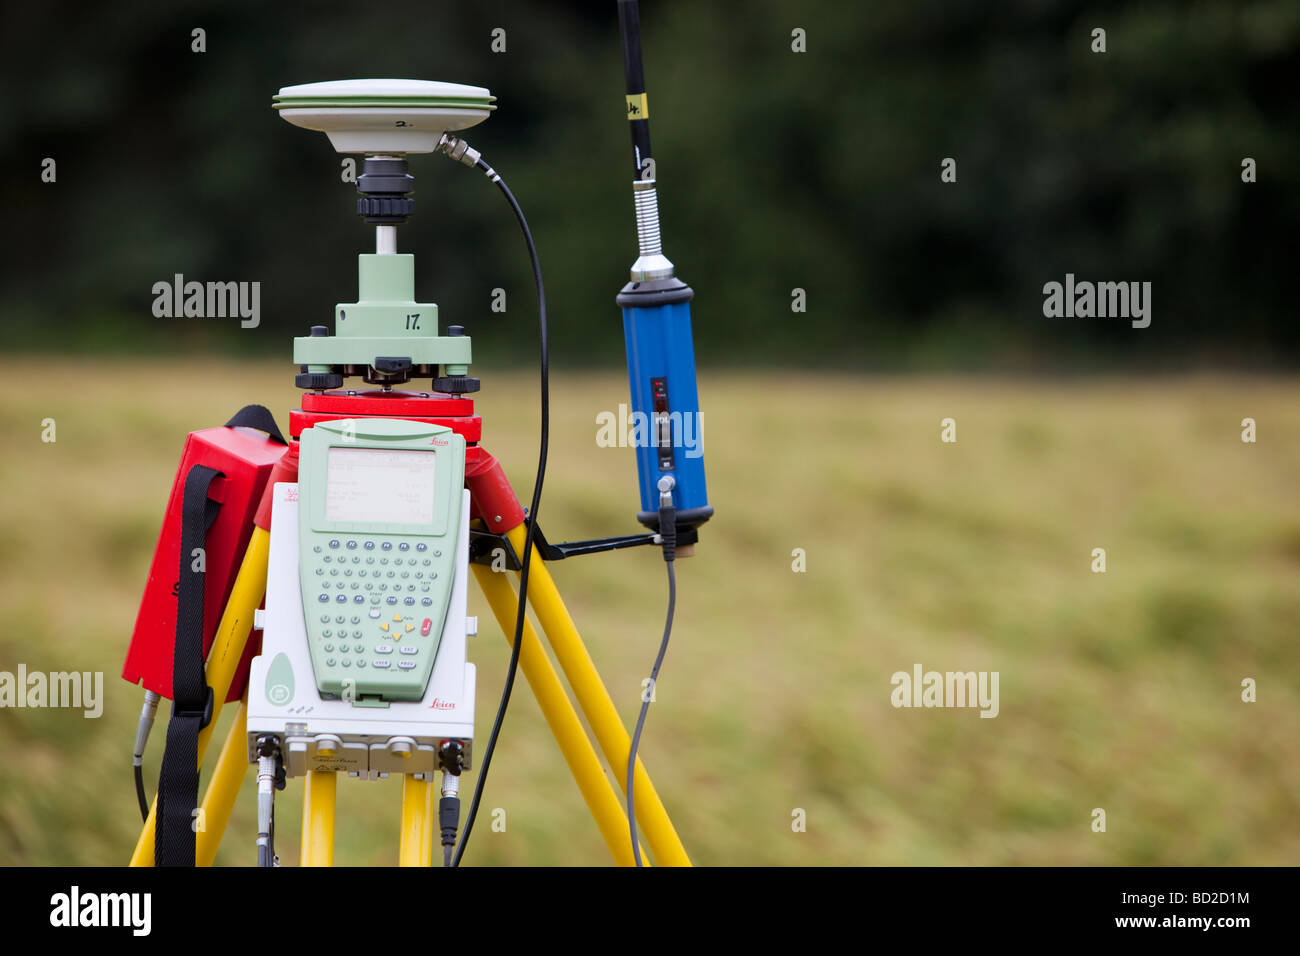 A differential GPS being used in real time kinematic survey to